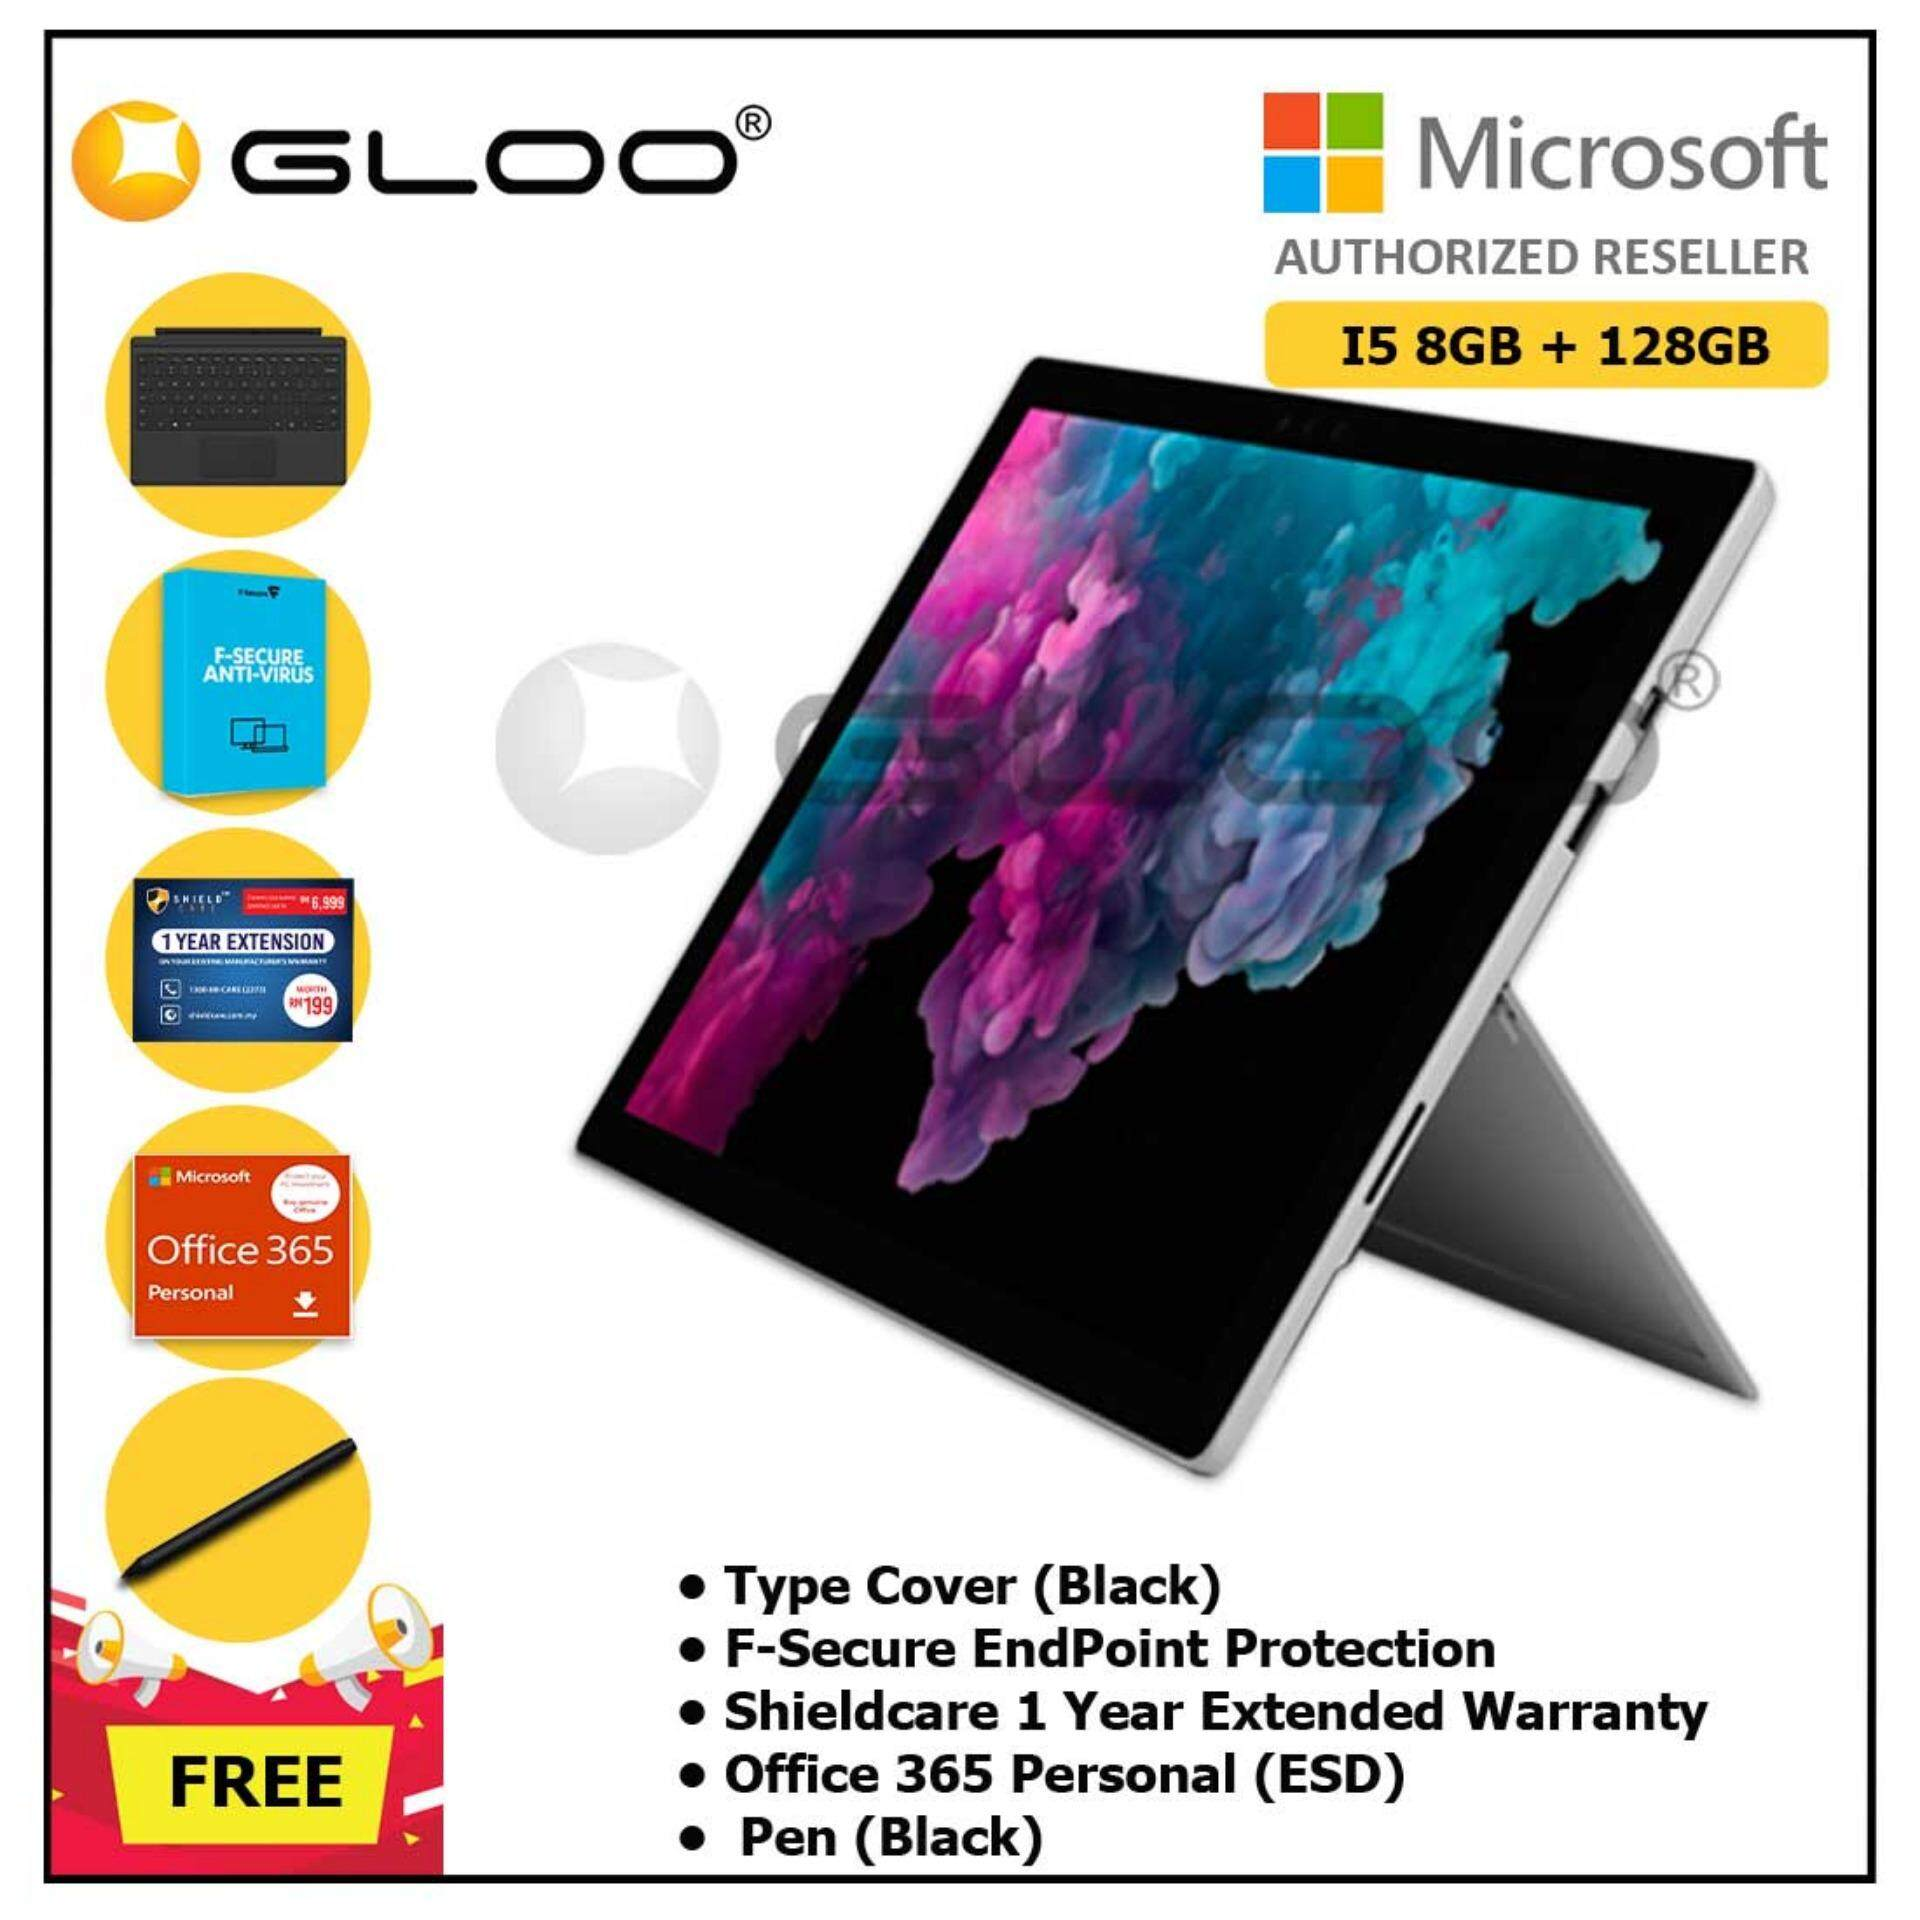 Microsoft Surface Pro 6 Core i5/8GB RAM -128GB + Type Cover Black + Office 365 Personal ESD + Shieldcare 1 Year Extended Warranty + F-Secure EndPoint Protection + Pen Black